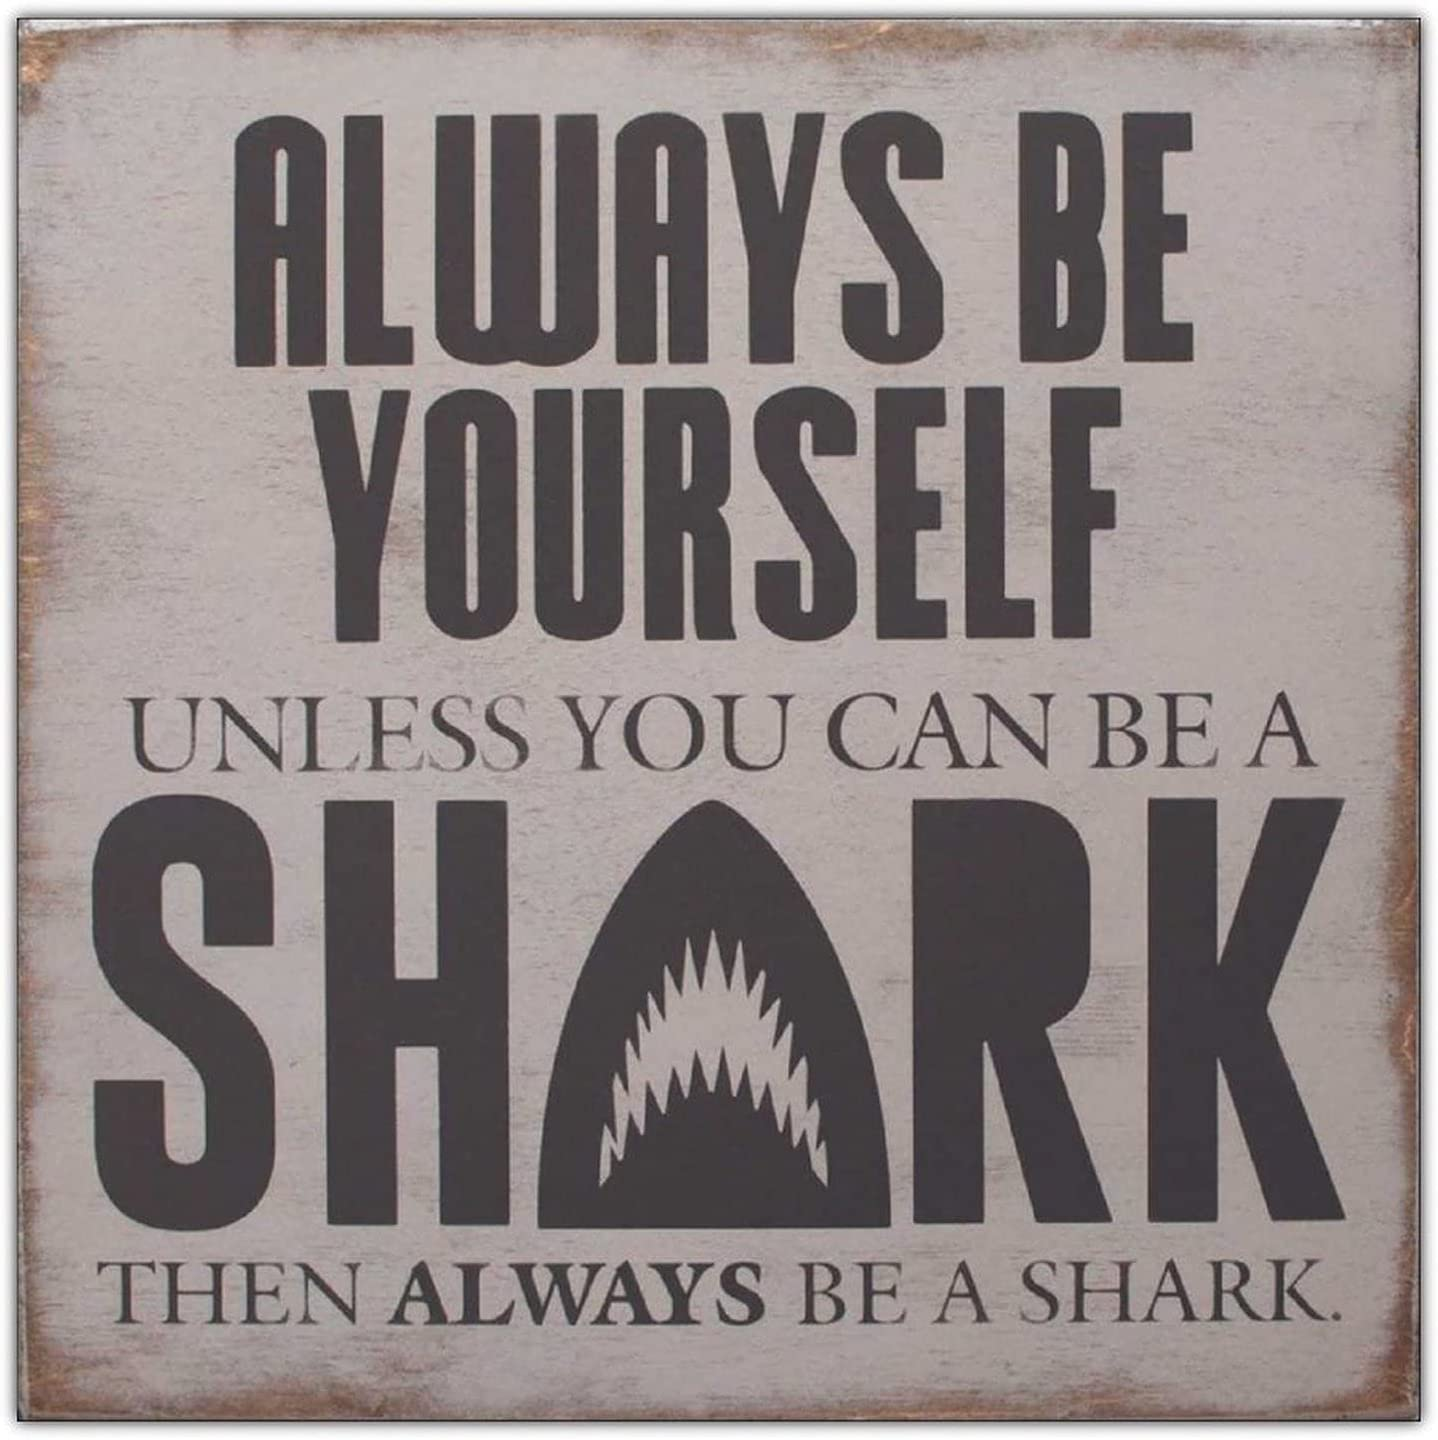 wonbye Wooden Signs with Sayings Ranking TOP3 Sign Shark Wood Decor Free shipping anywhere in the nation